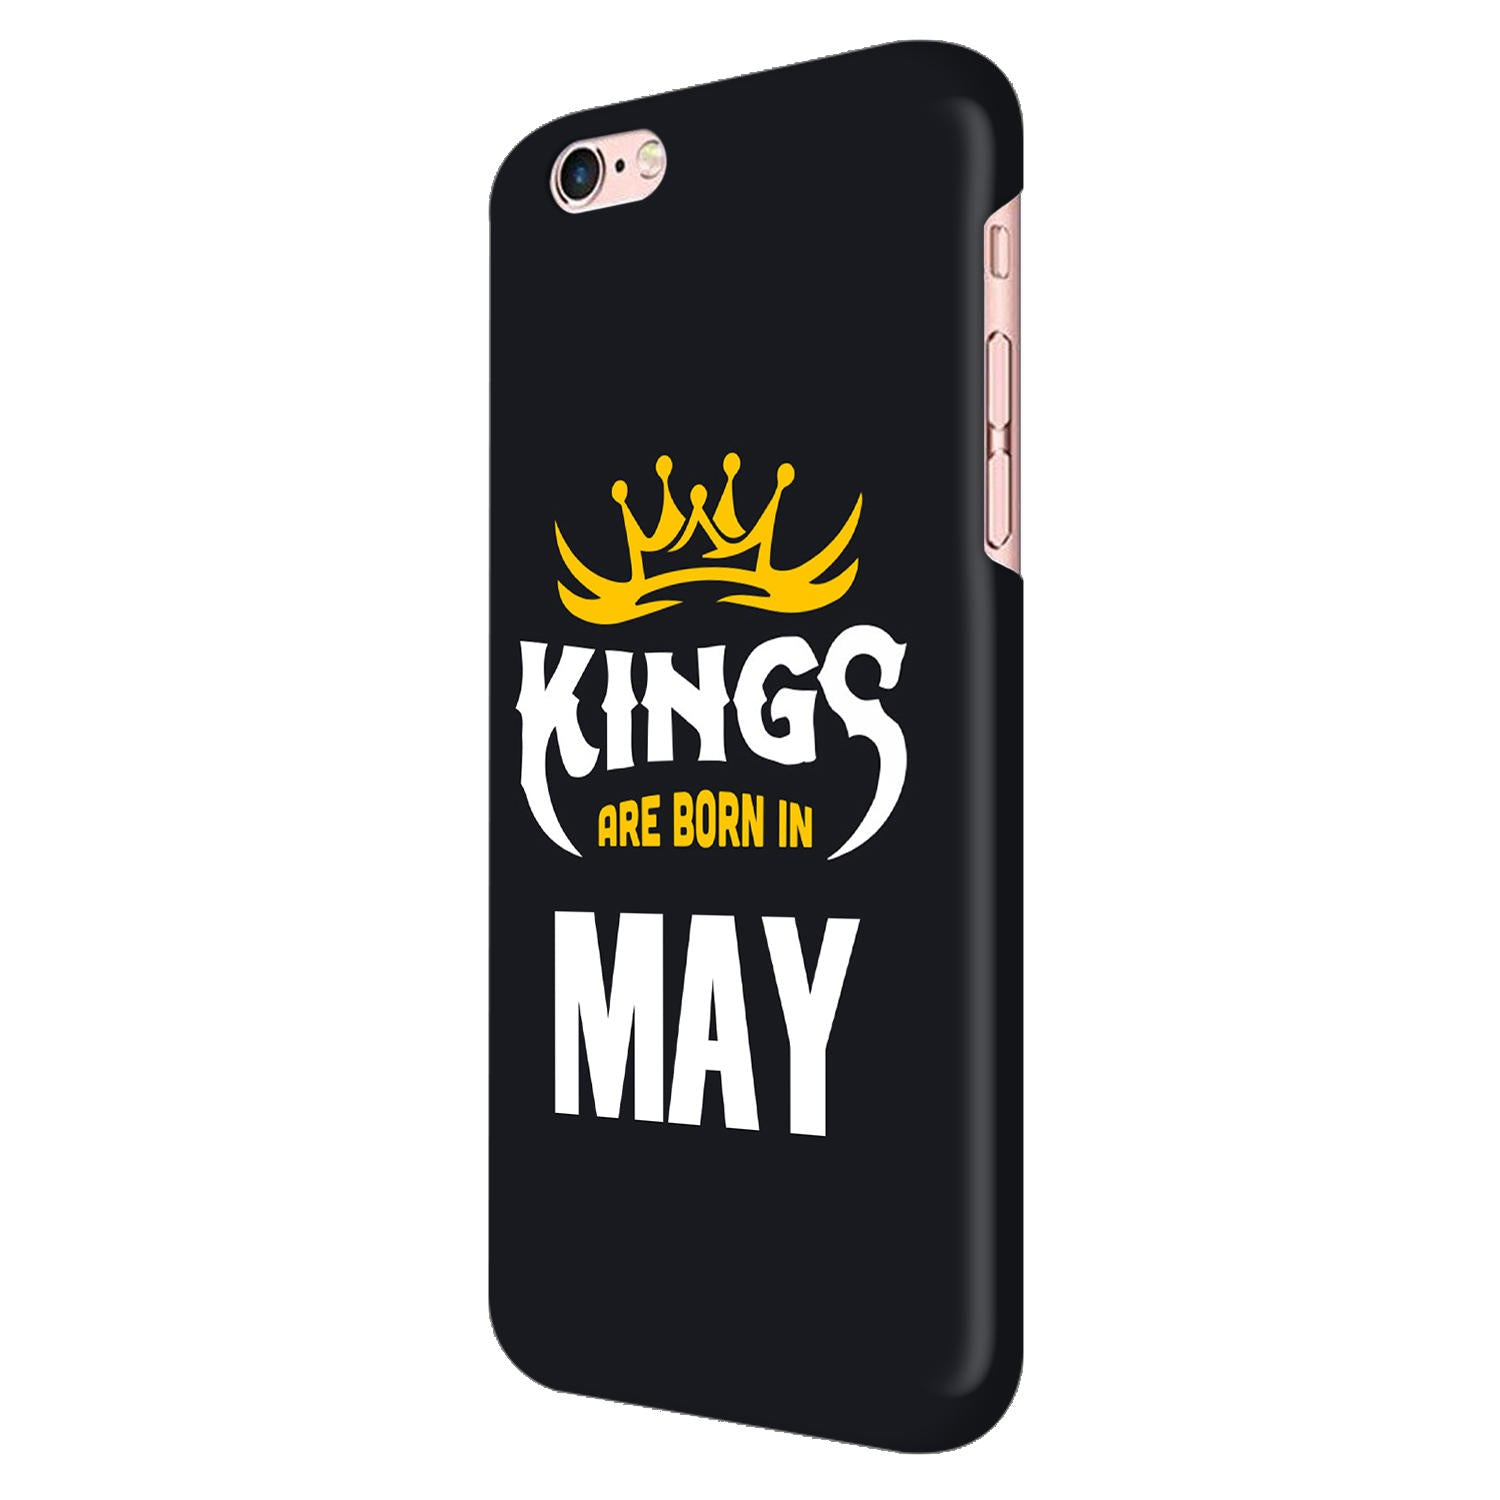 Kings May - Narcissist iPhone 6 Mobile Cover Case - MADANYU